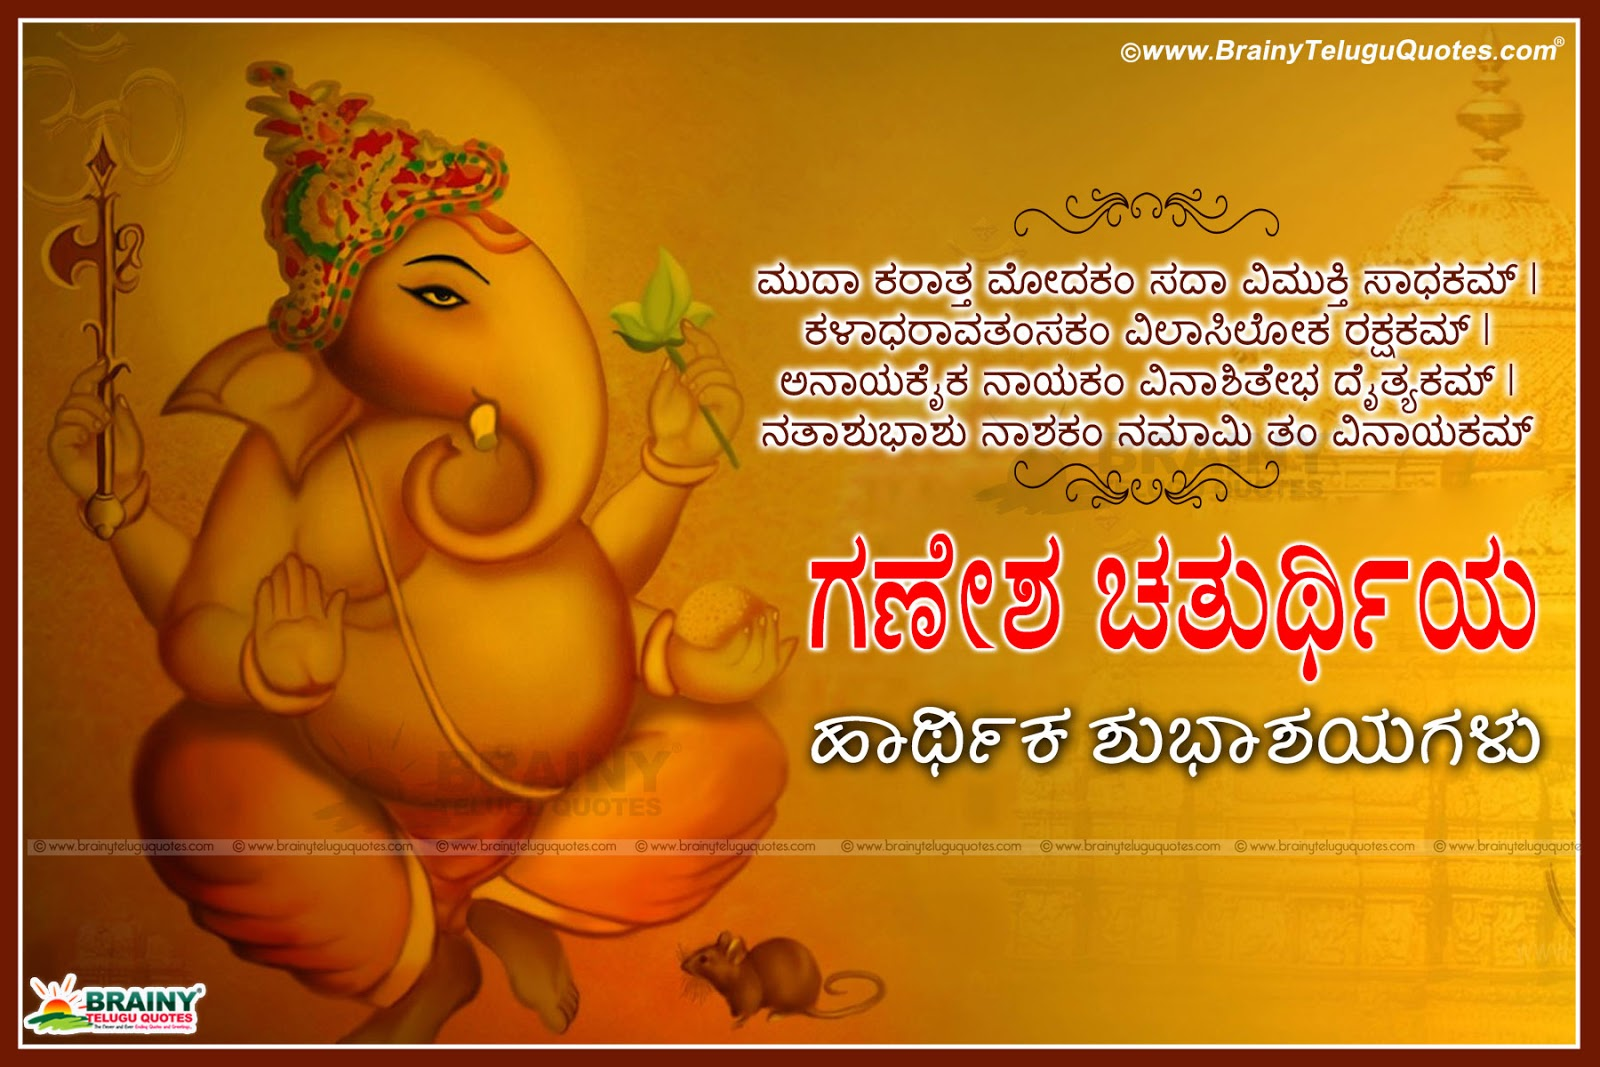 Ganesh chaturthi 2016 greetings quotes wishes in kannada ganesh here is a new ganesh chaturthi greetings and messages in kannada languagetop famous ganesh m4hsunfo